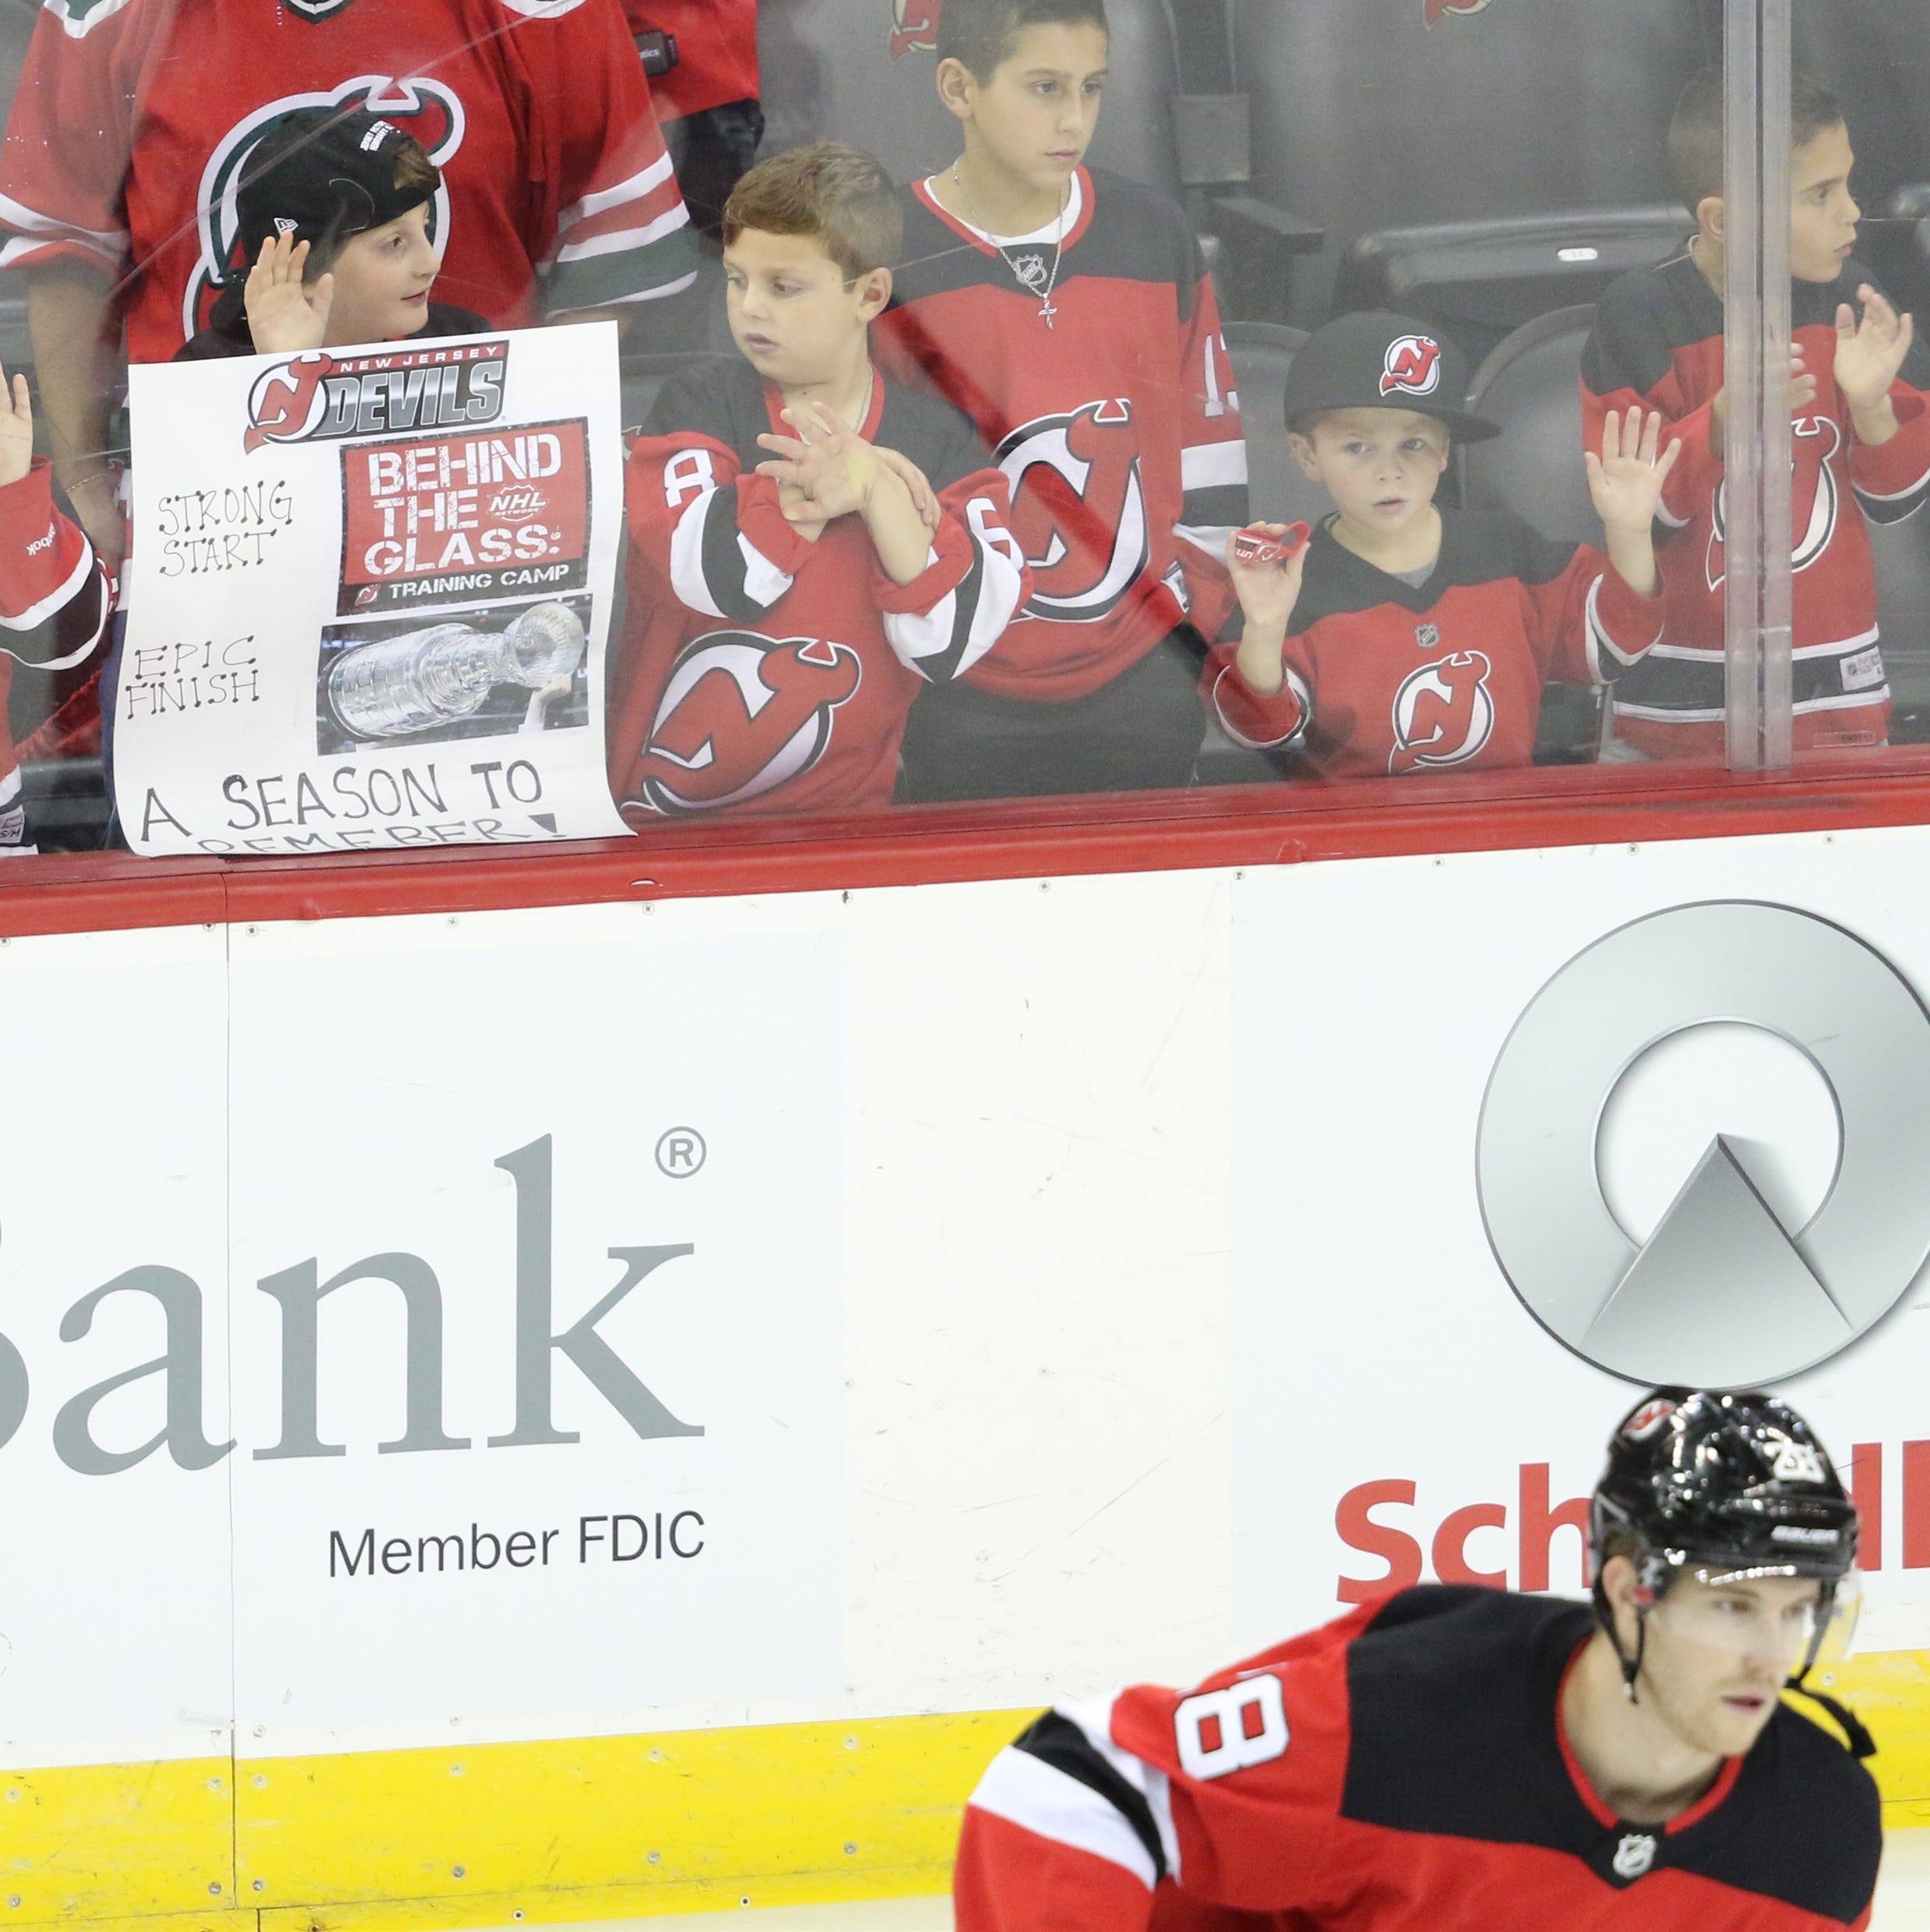 3 takeaways from NJ Devils' win over Sharks